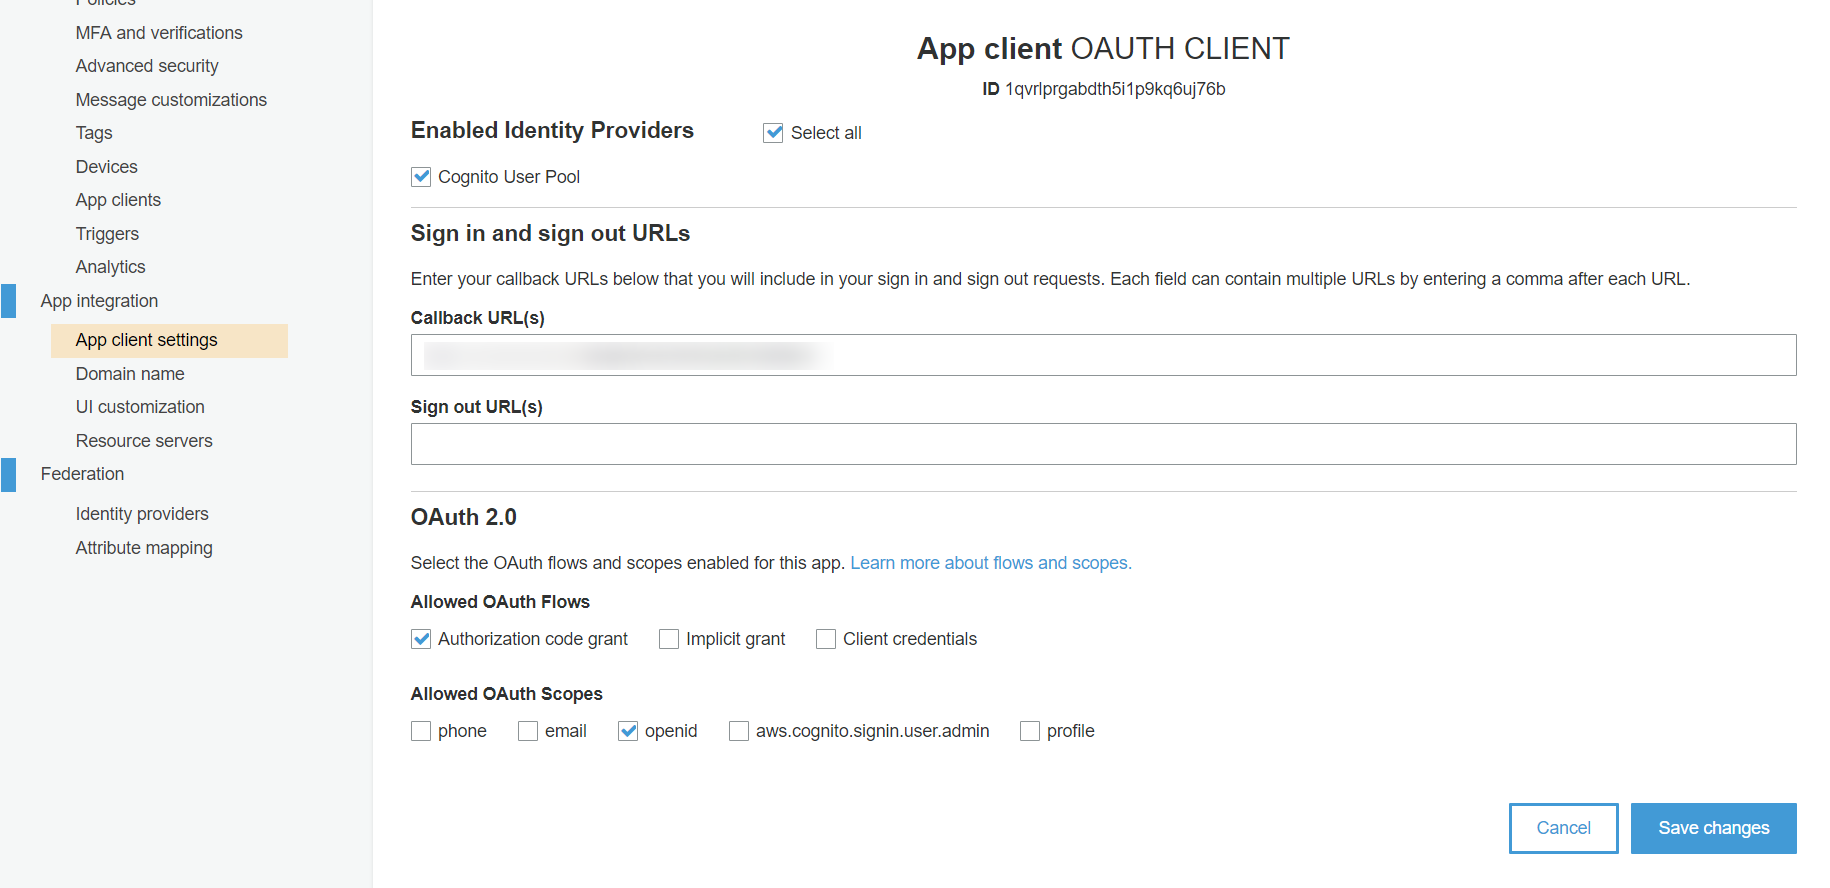 OAuth/OpenID/OIDC Single Sign On (SSO), AWS cognito SSO Login Save changes